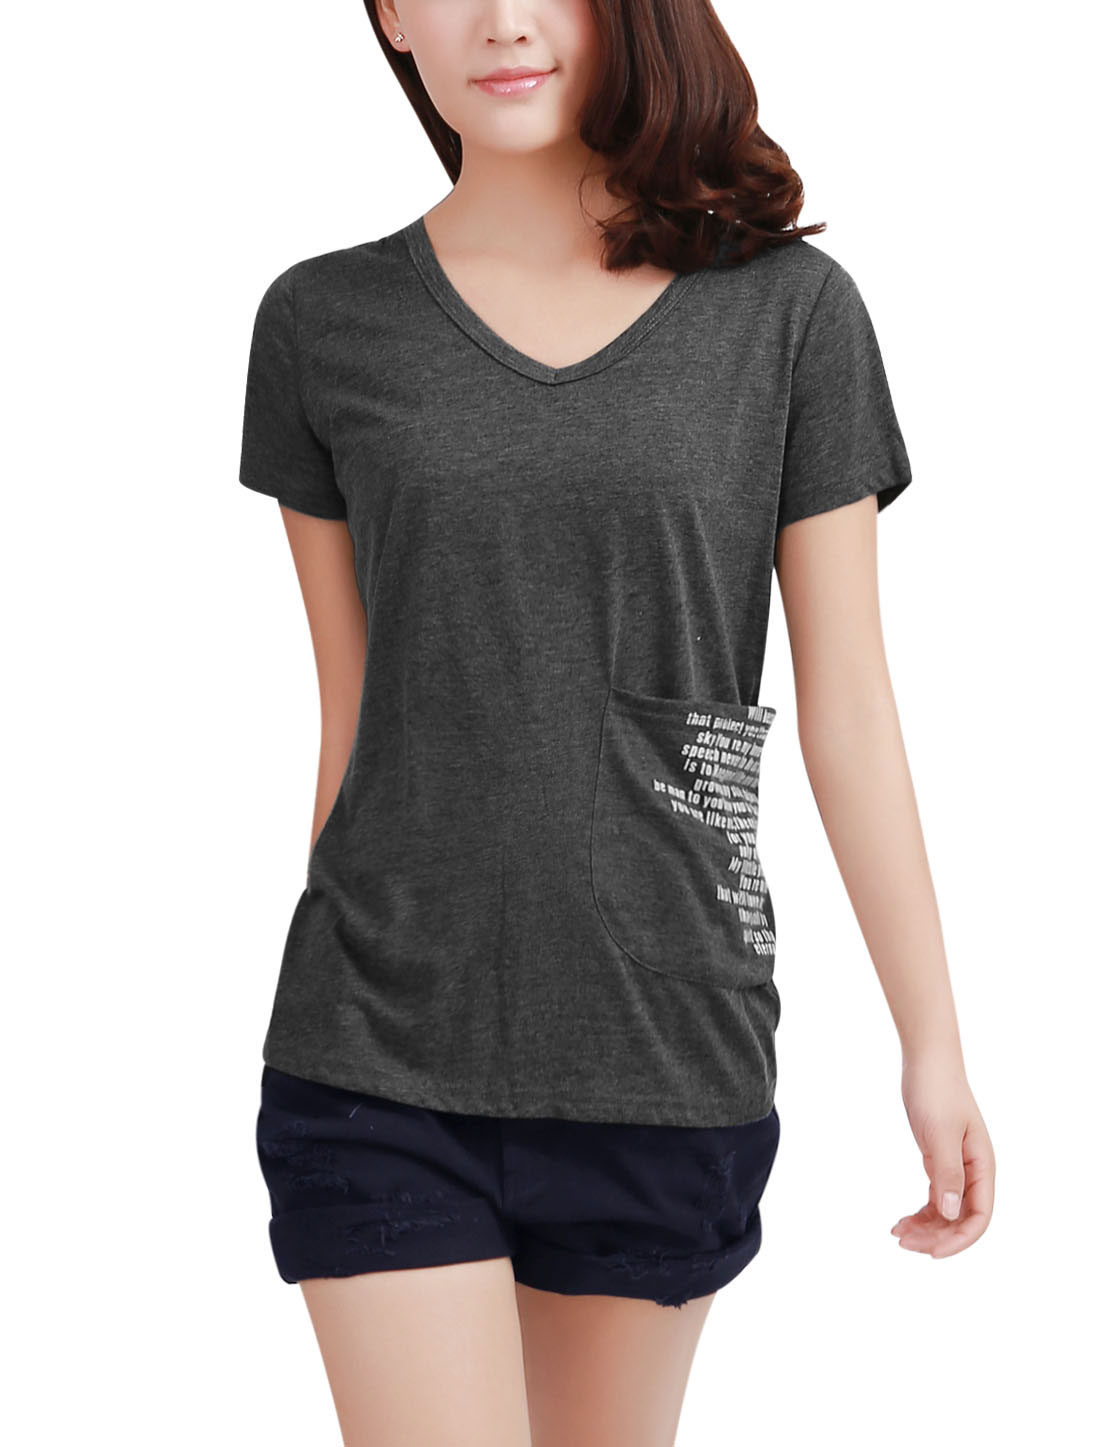 Lady Chic Front Pockets Design Letters Detail Dark Gray T-Shirt XL